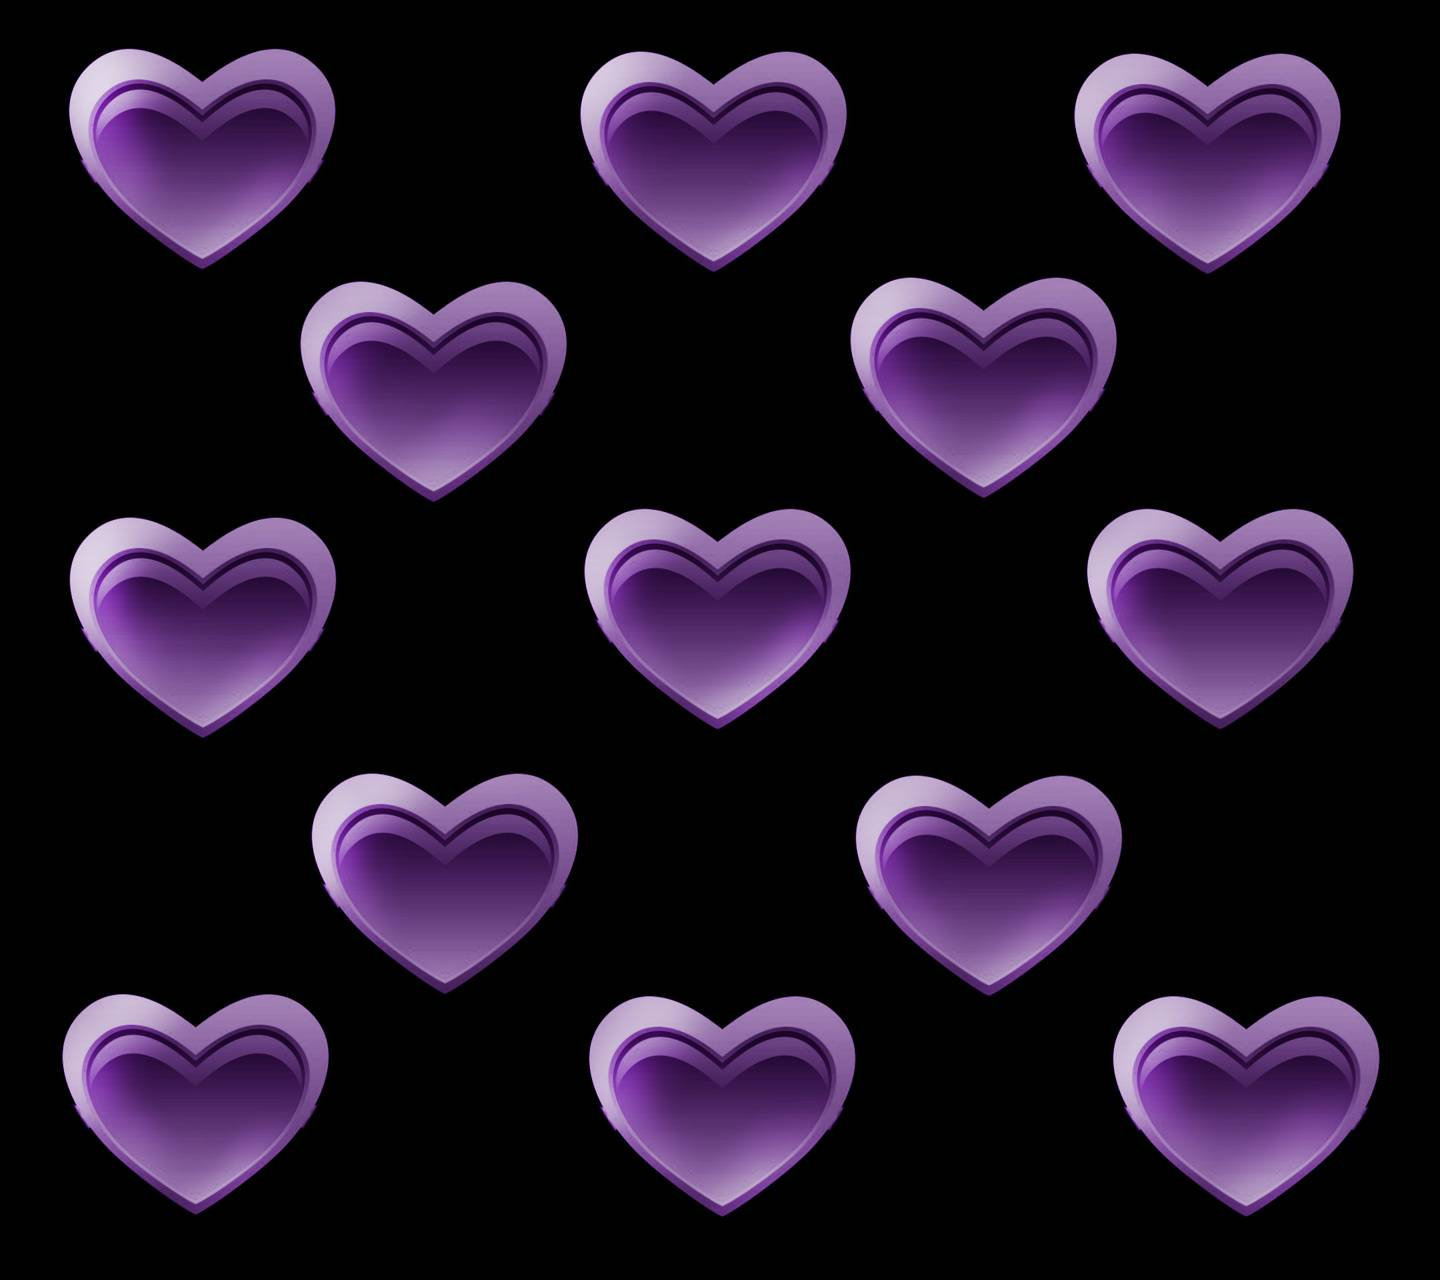 Just Hearts 4